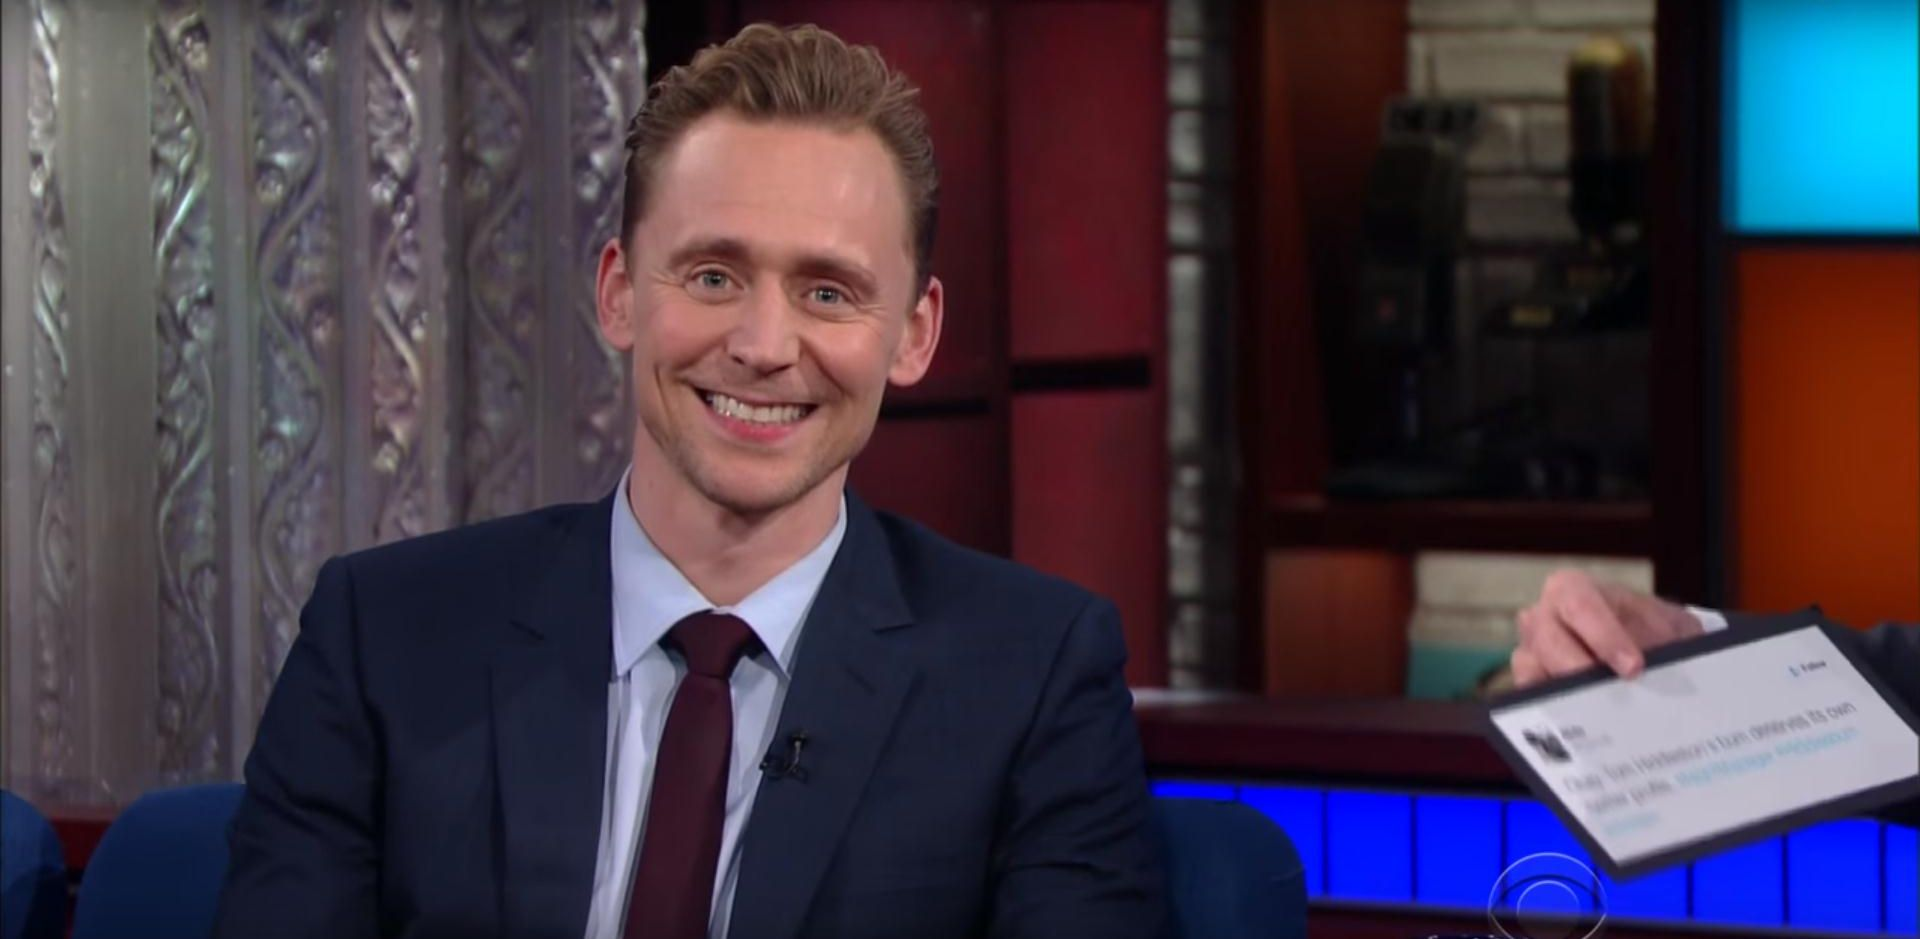 NOVI FAVORIT Tom Hiddleston nasljednik Daniela Craiga?